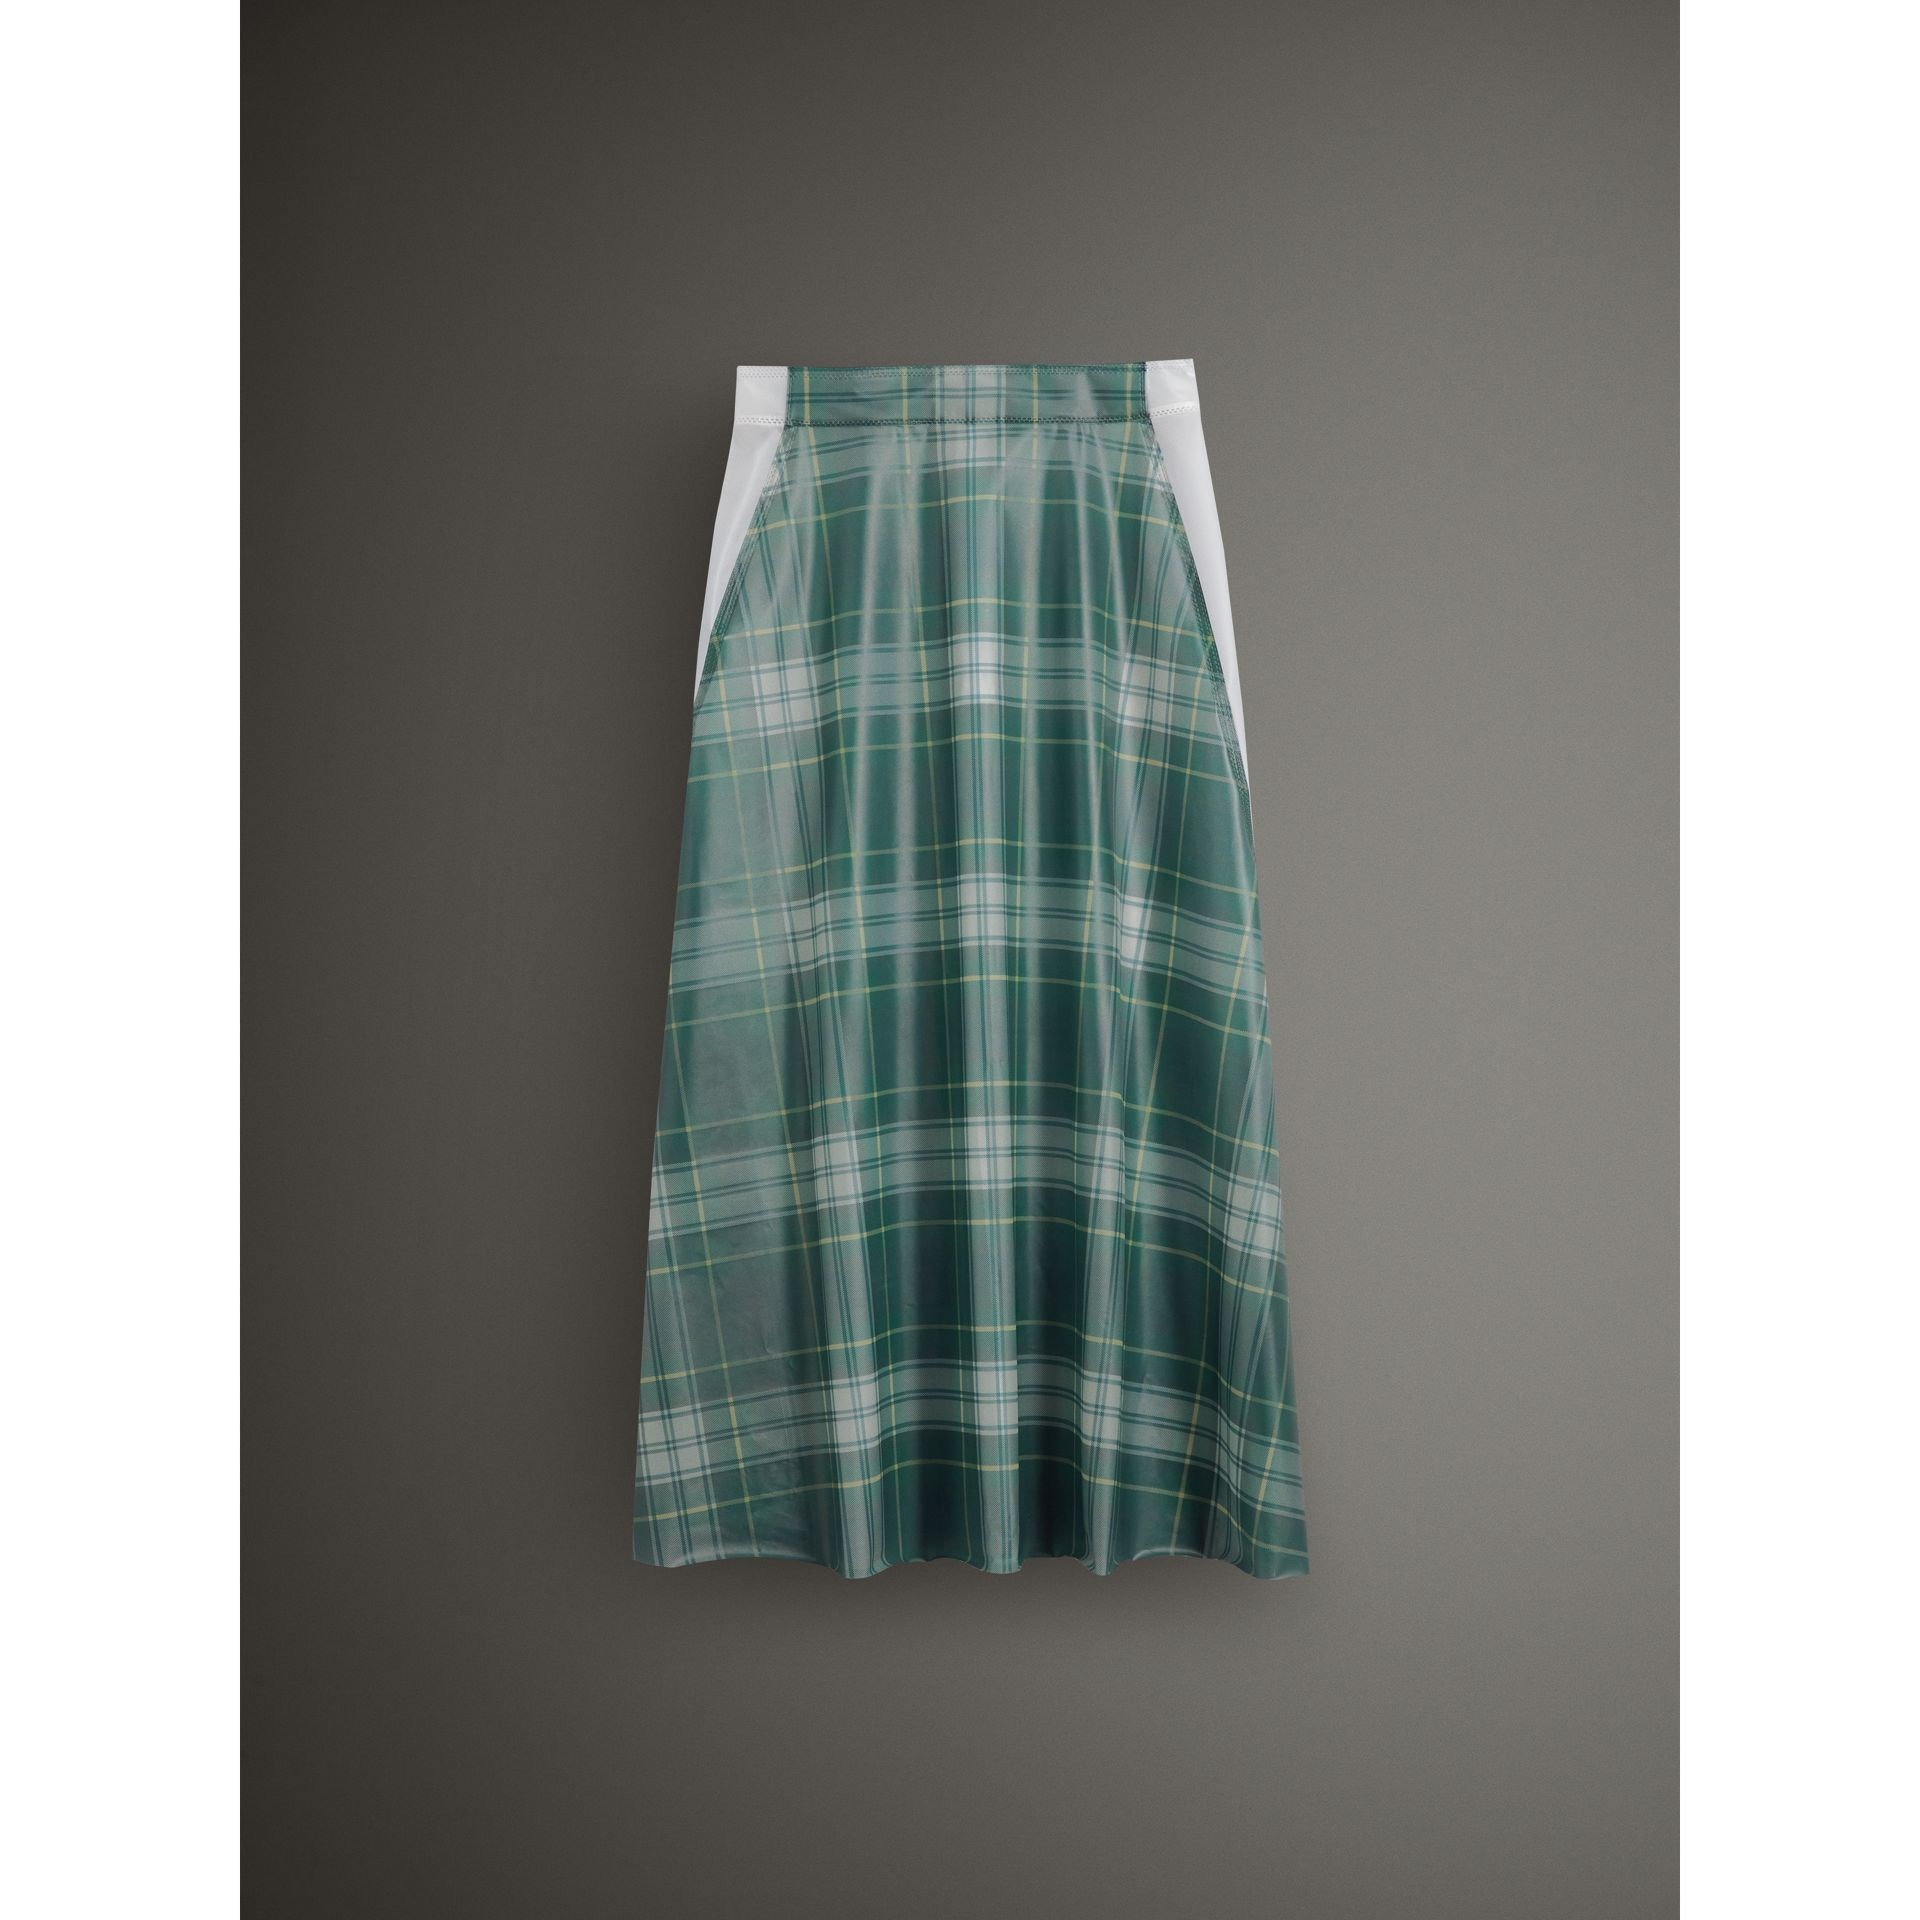 Silk-lined Tartan Plastic A-line Skirt in Green - Women | Burberry - gallery image 4